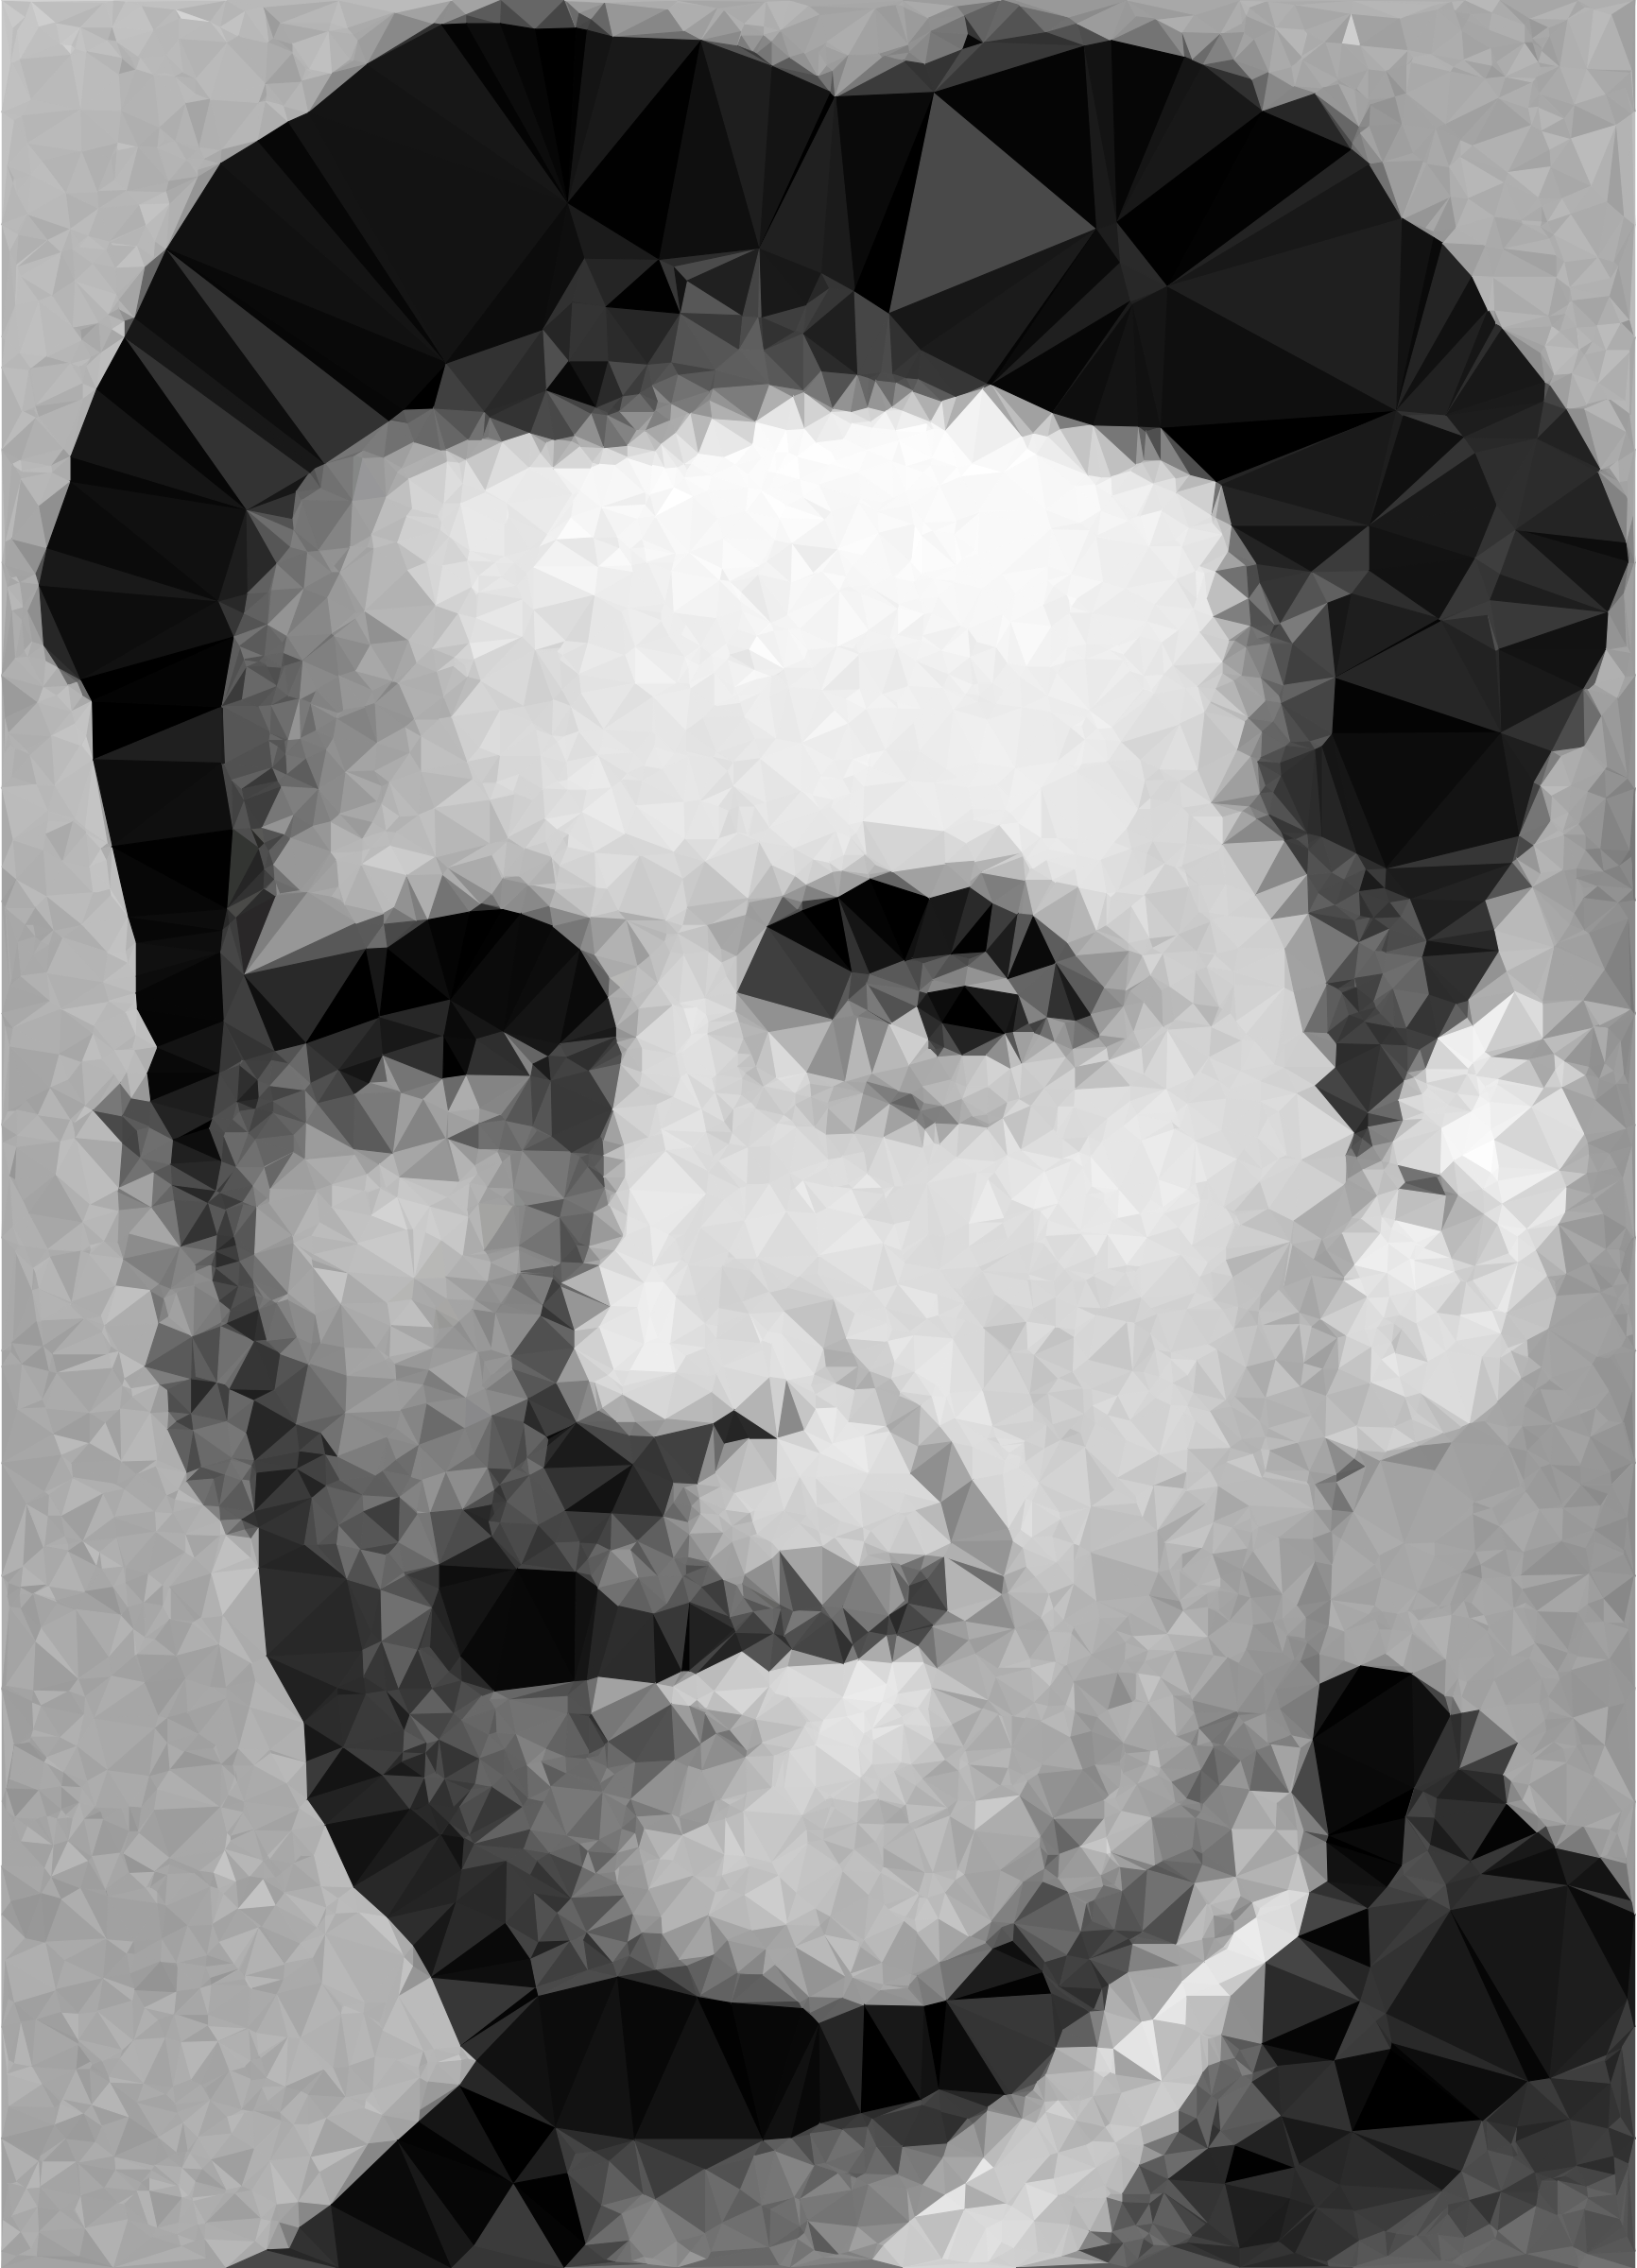 Low Poly George Orwell by GDJ